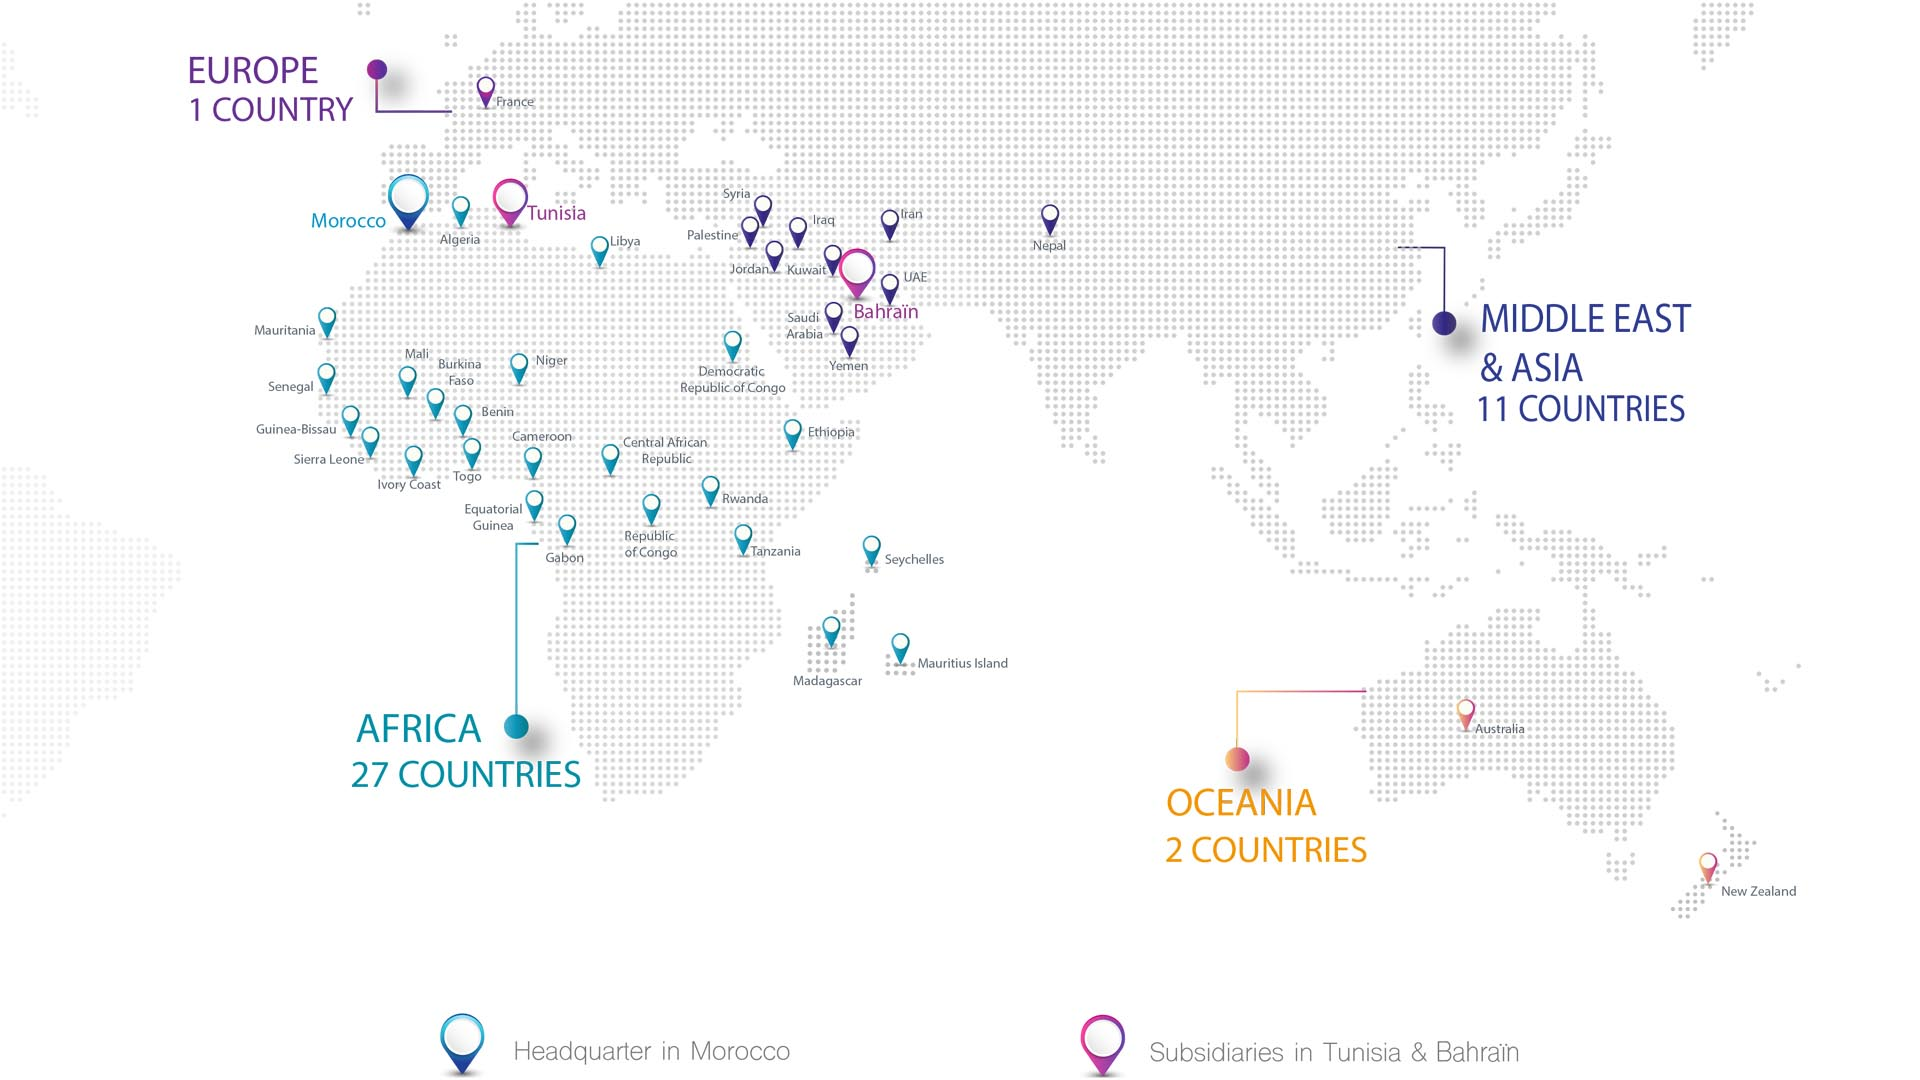 180 institutions around the world